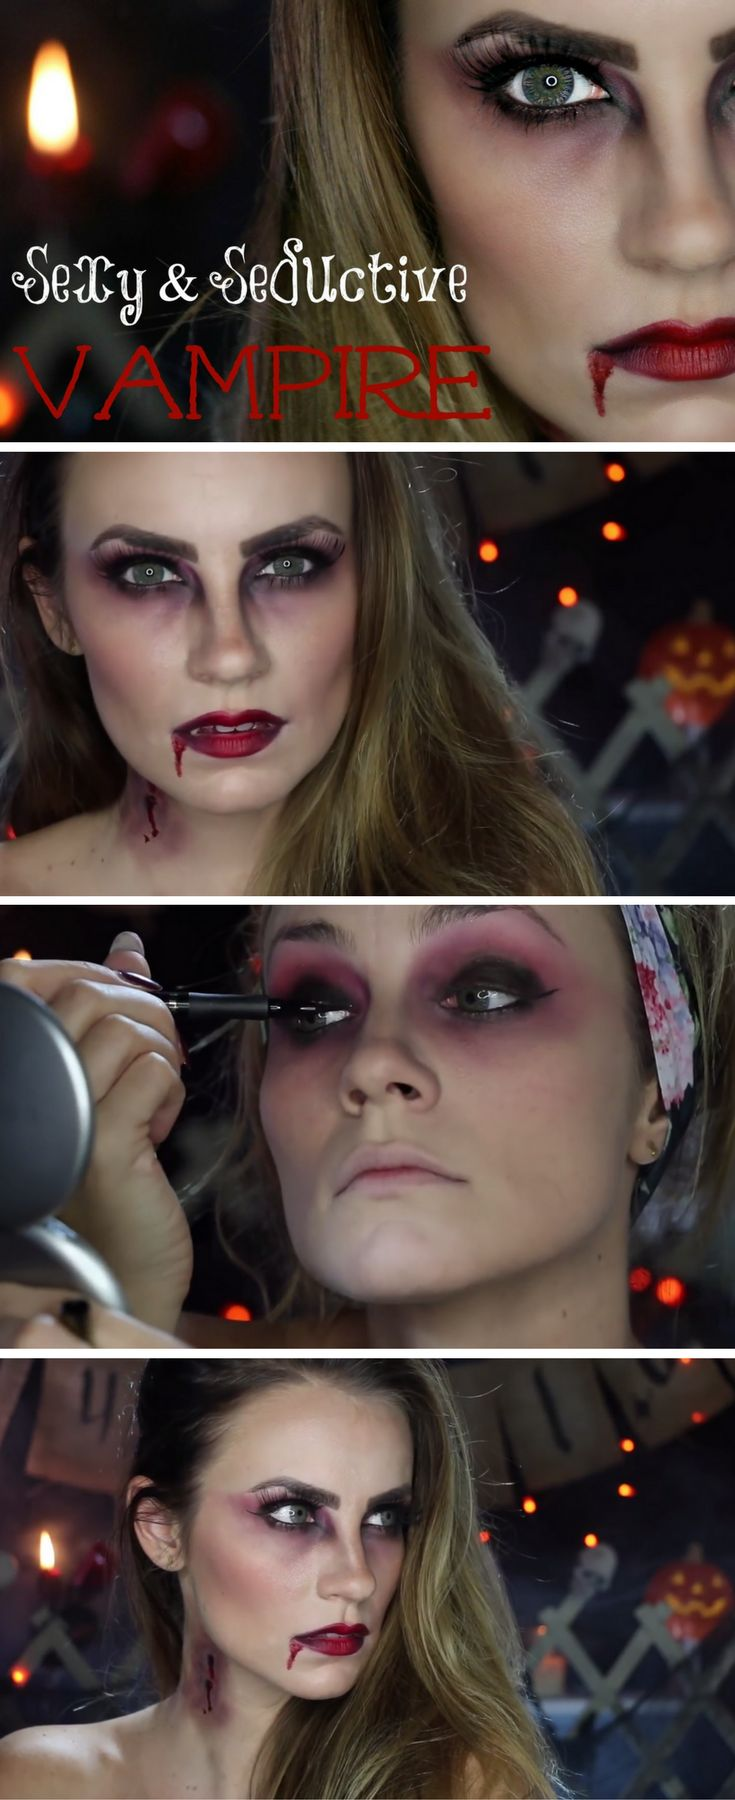 With the Twilight series & Vampire Diaries being so wildly popular, vampires are all the rage.  So why not turn yourself into a sexy, seductive vampire this Halloween?  I'm shown you how to get your sexiest vampire look in this video!